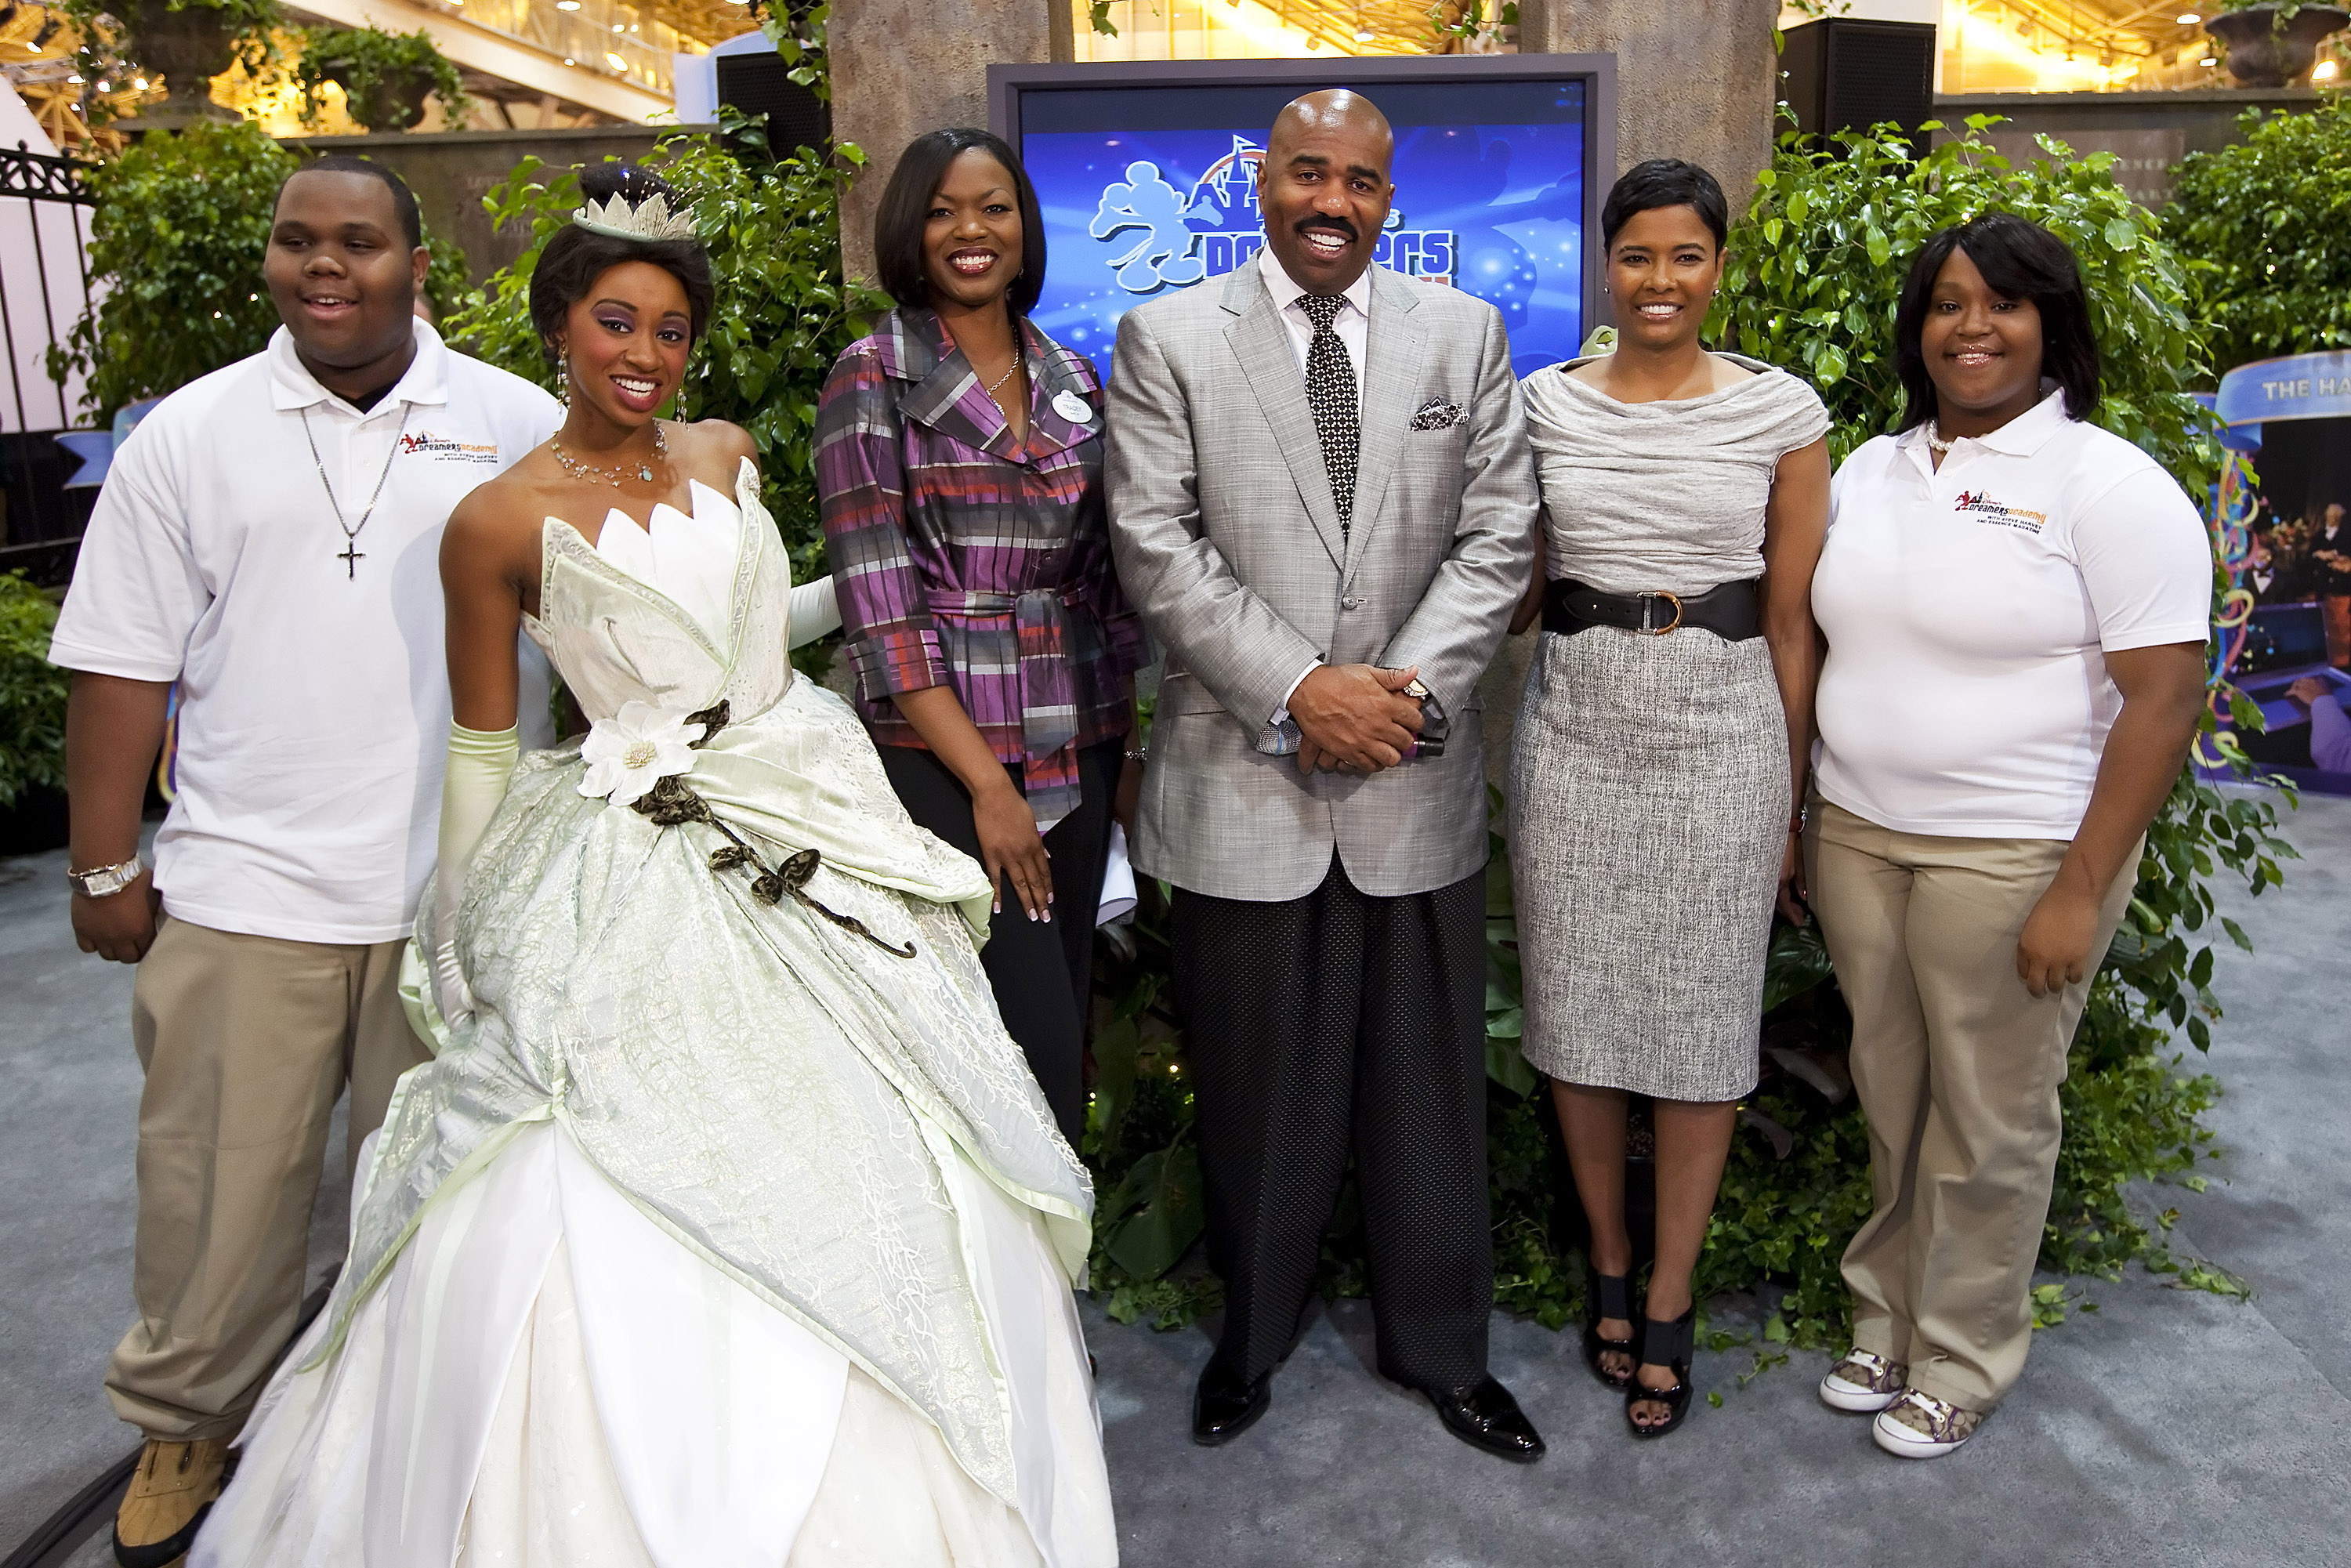 Disney's Dreamers Academy With Steve Harvey (photo courtesy of Disney)